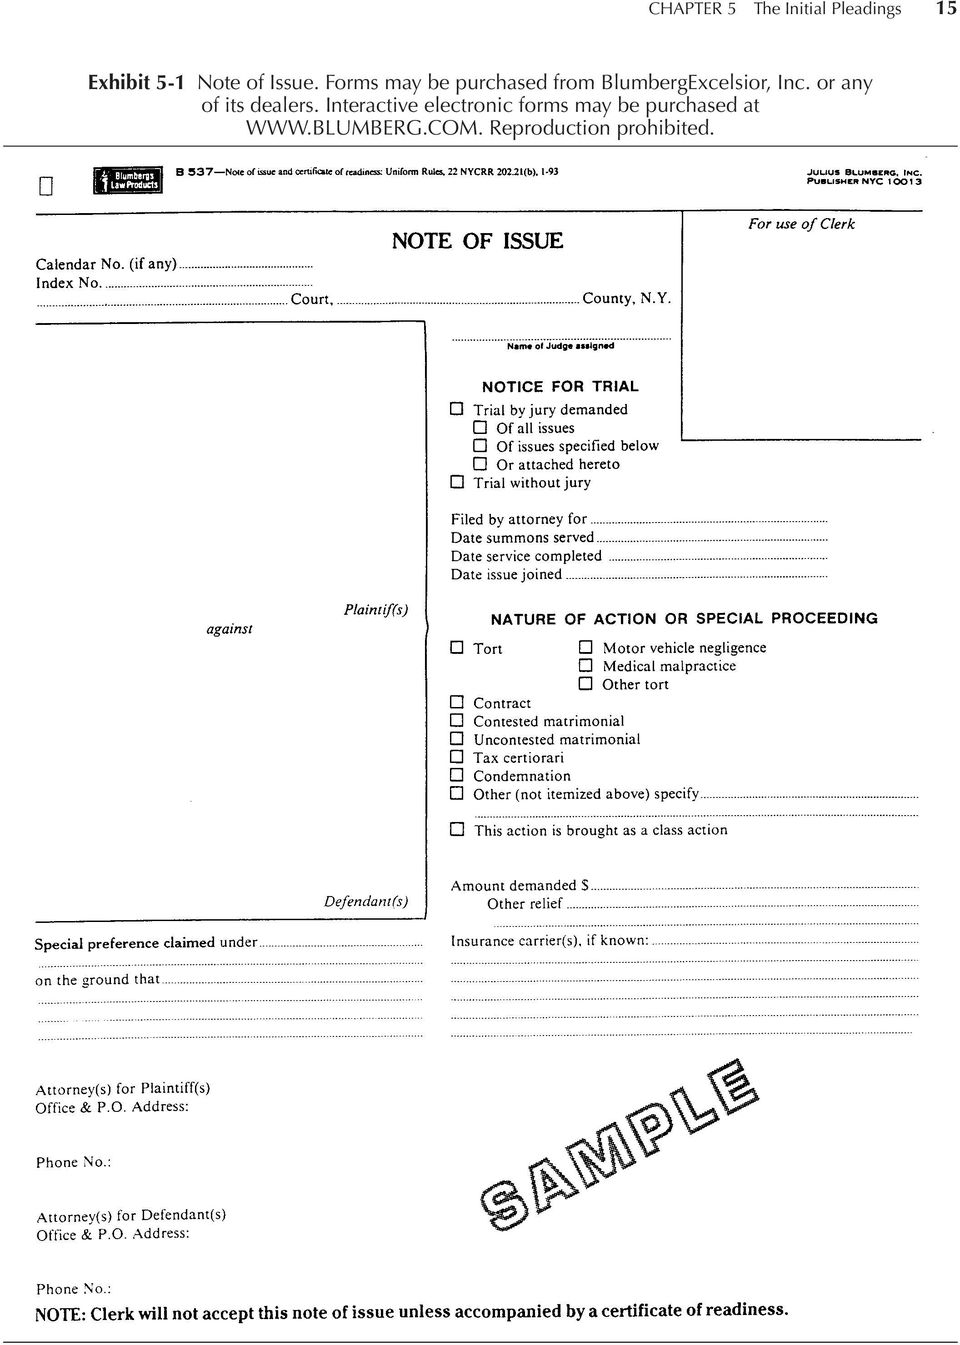 Forms may be purchased from BlumbergExcelsior, Inc.